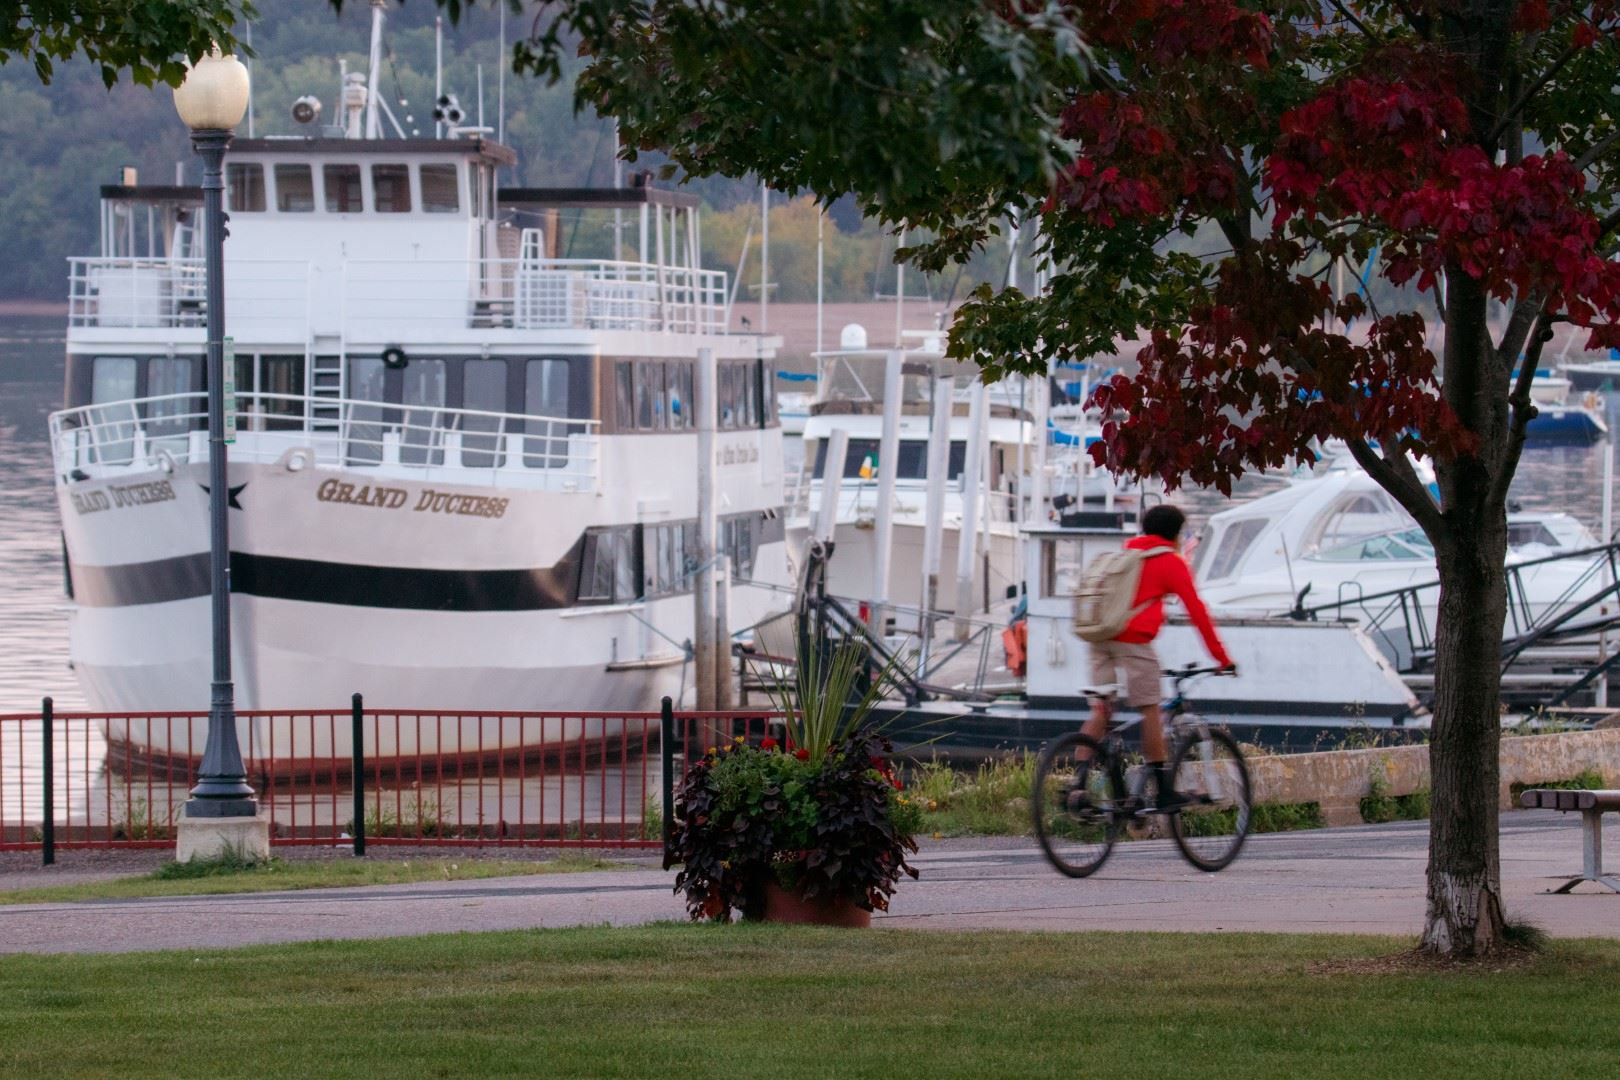 Grand Duchess Boat at Dock with Person on Bike